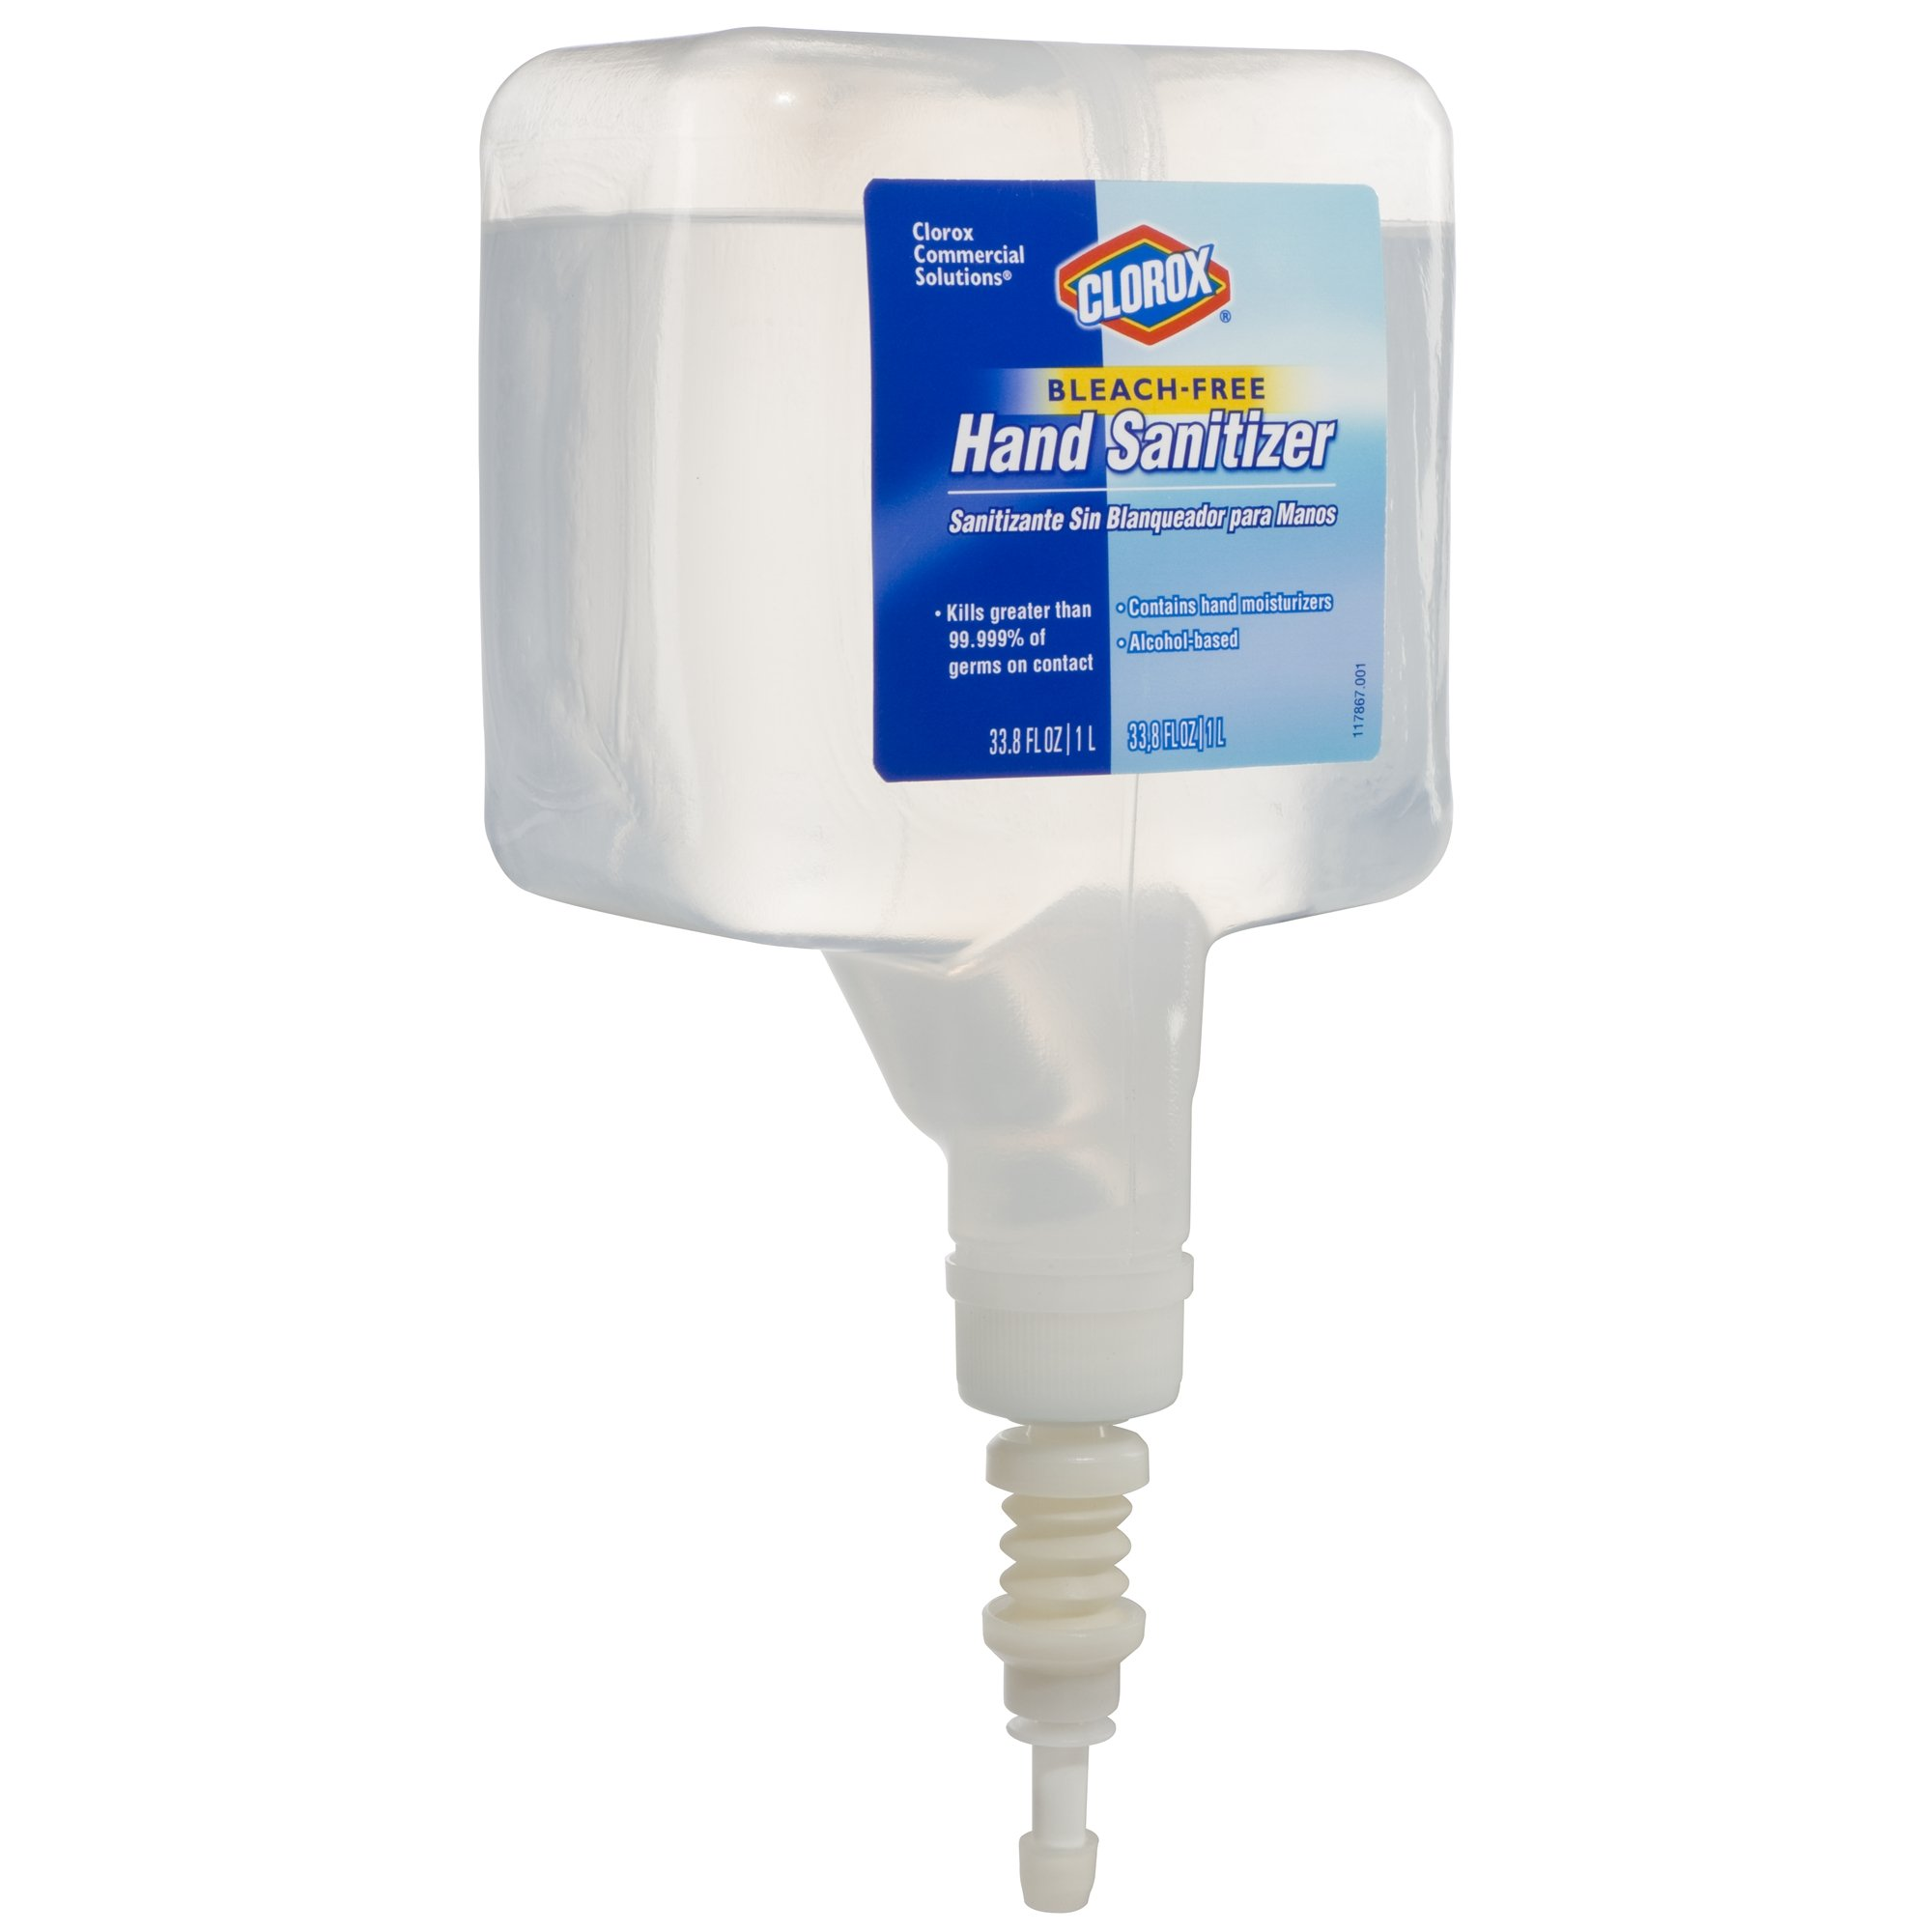 Clorox 30243 Commercial Solutions Touchless Hand Sanitizing Spray Dispenser Refill, 1000 ml by Clorox (Image #4)